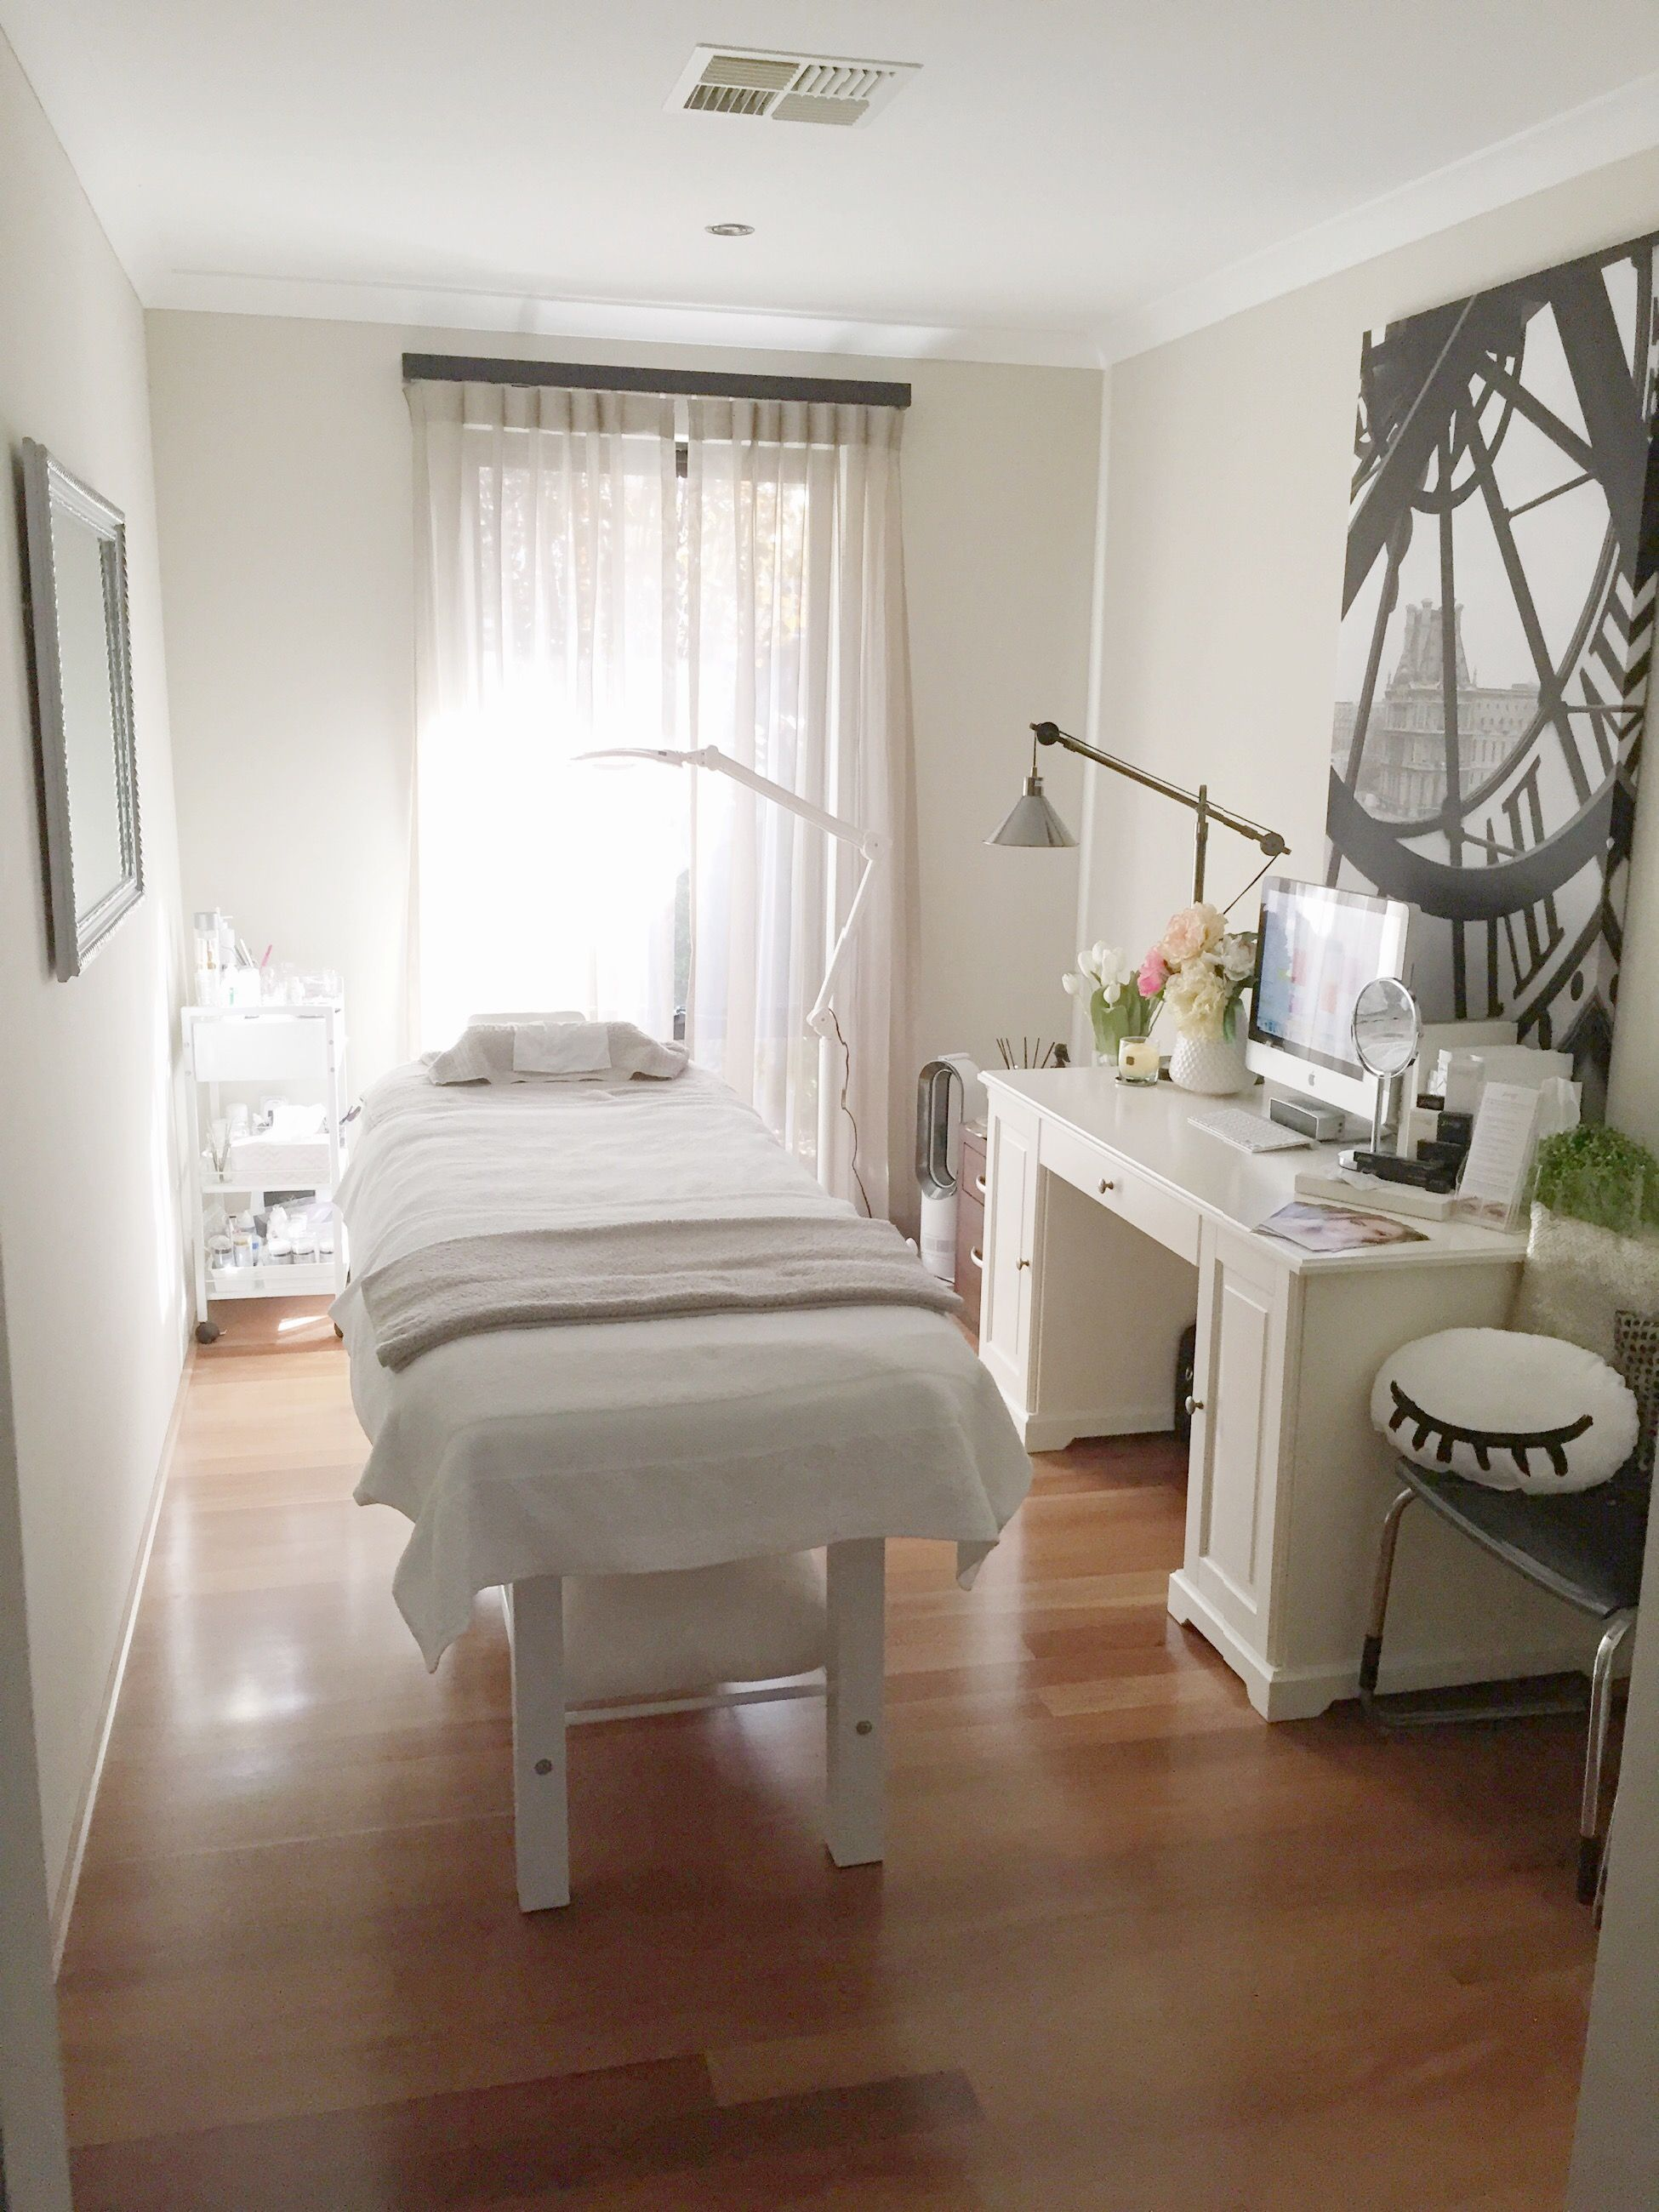 Lash salon decor treatment rooms pinteres Ideas to decorate your room